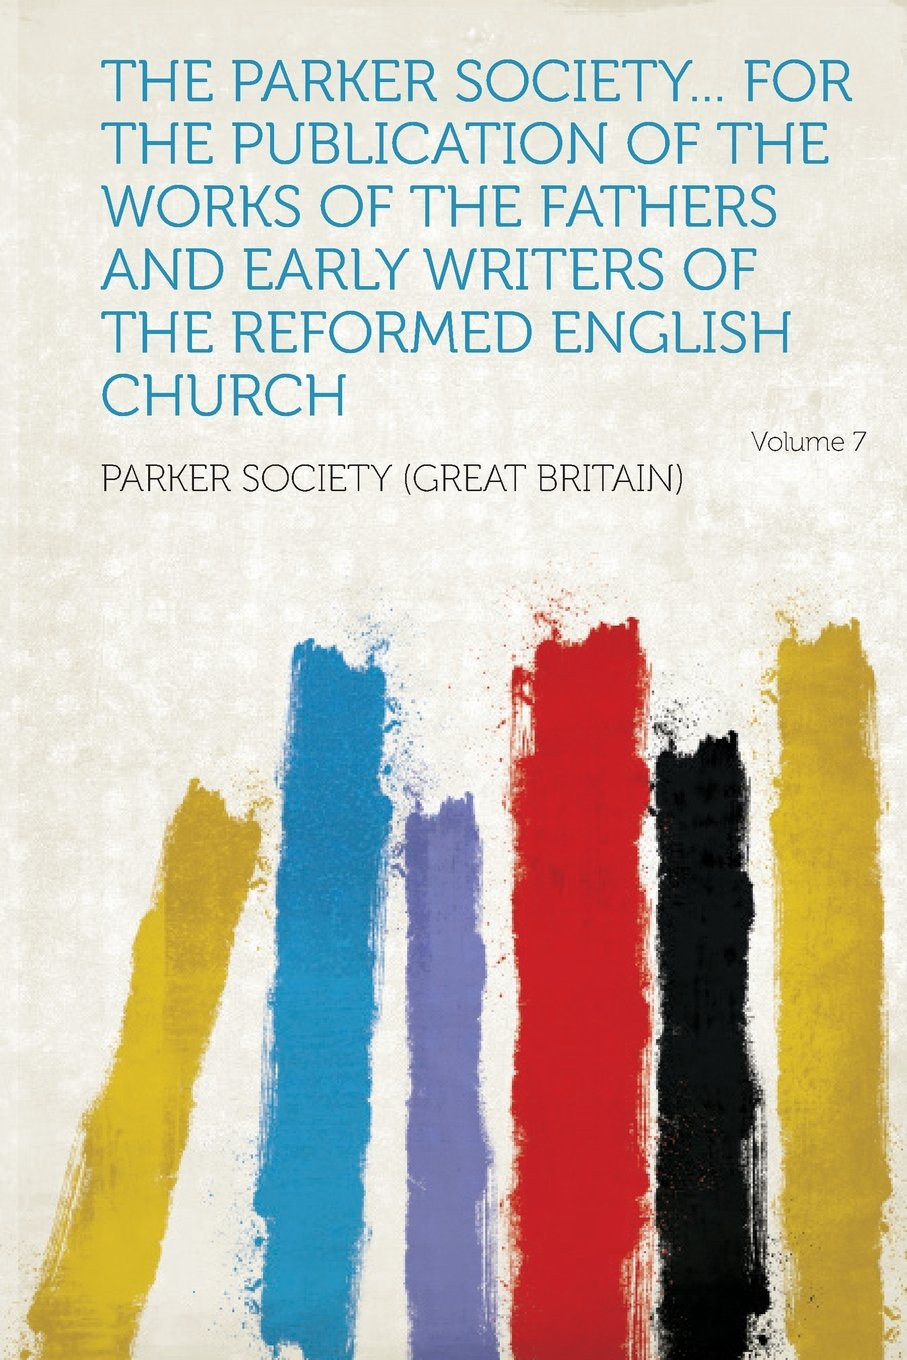 Download The Parker Society... for the Publication of the Works of the Fathers and Early Writers of the Reformed English Church Volume 7 PDF